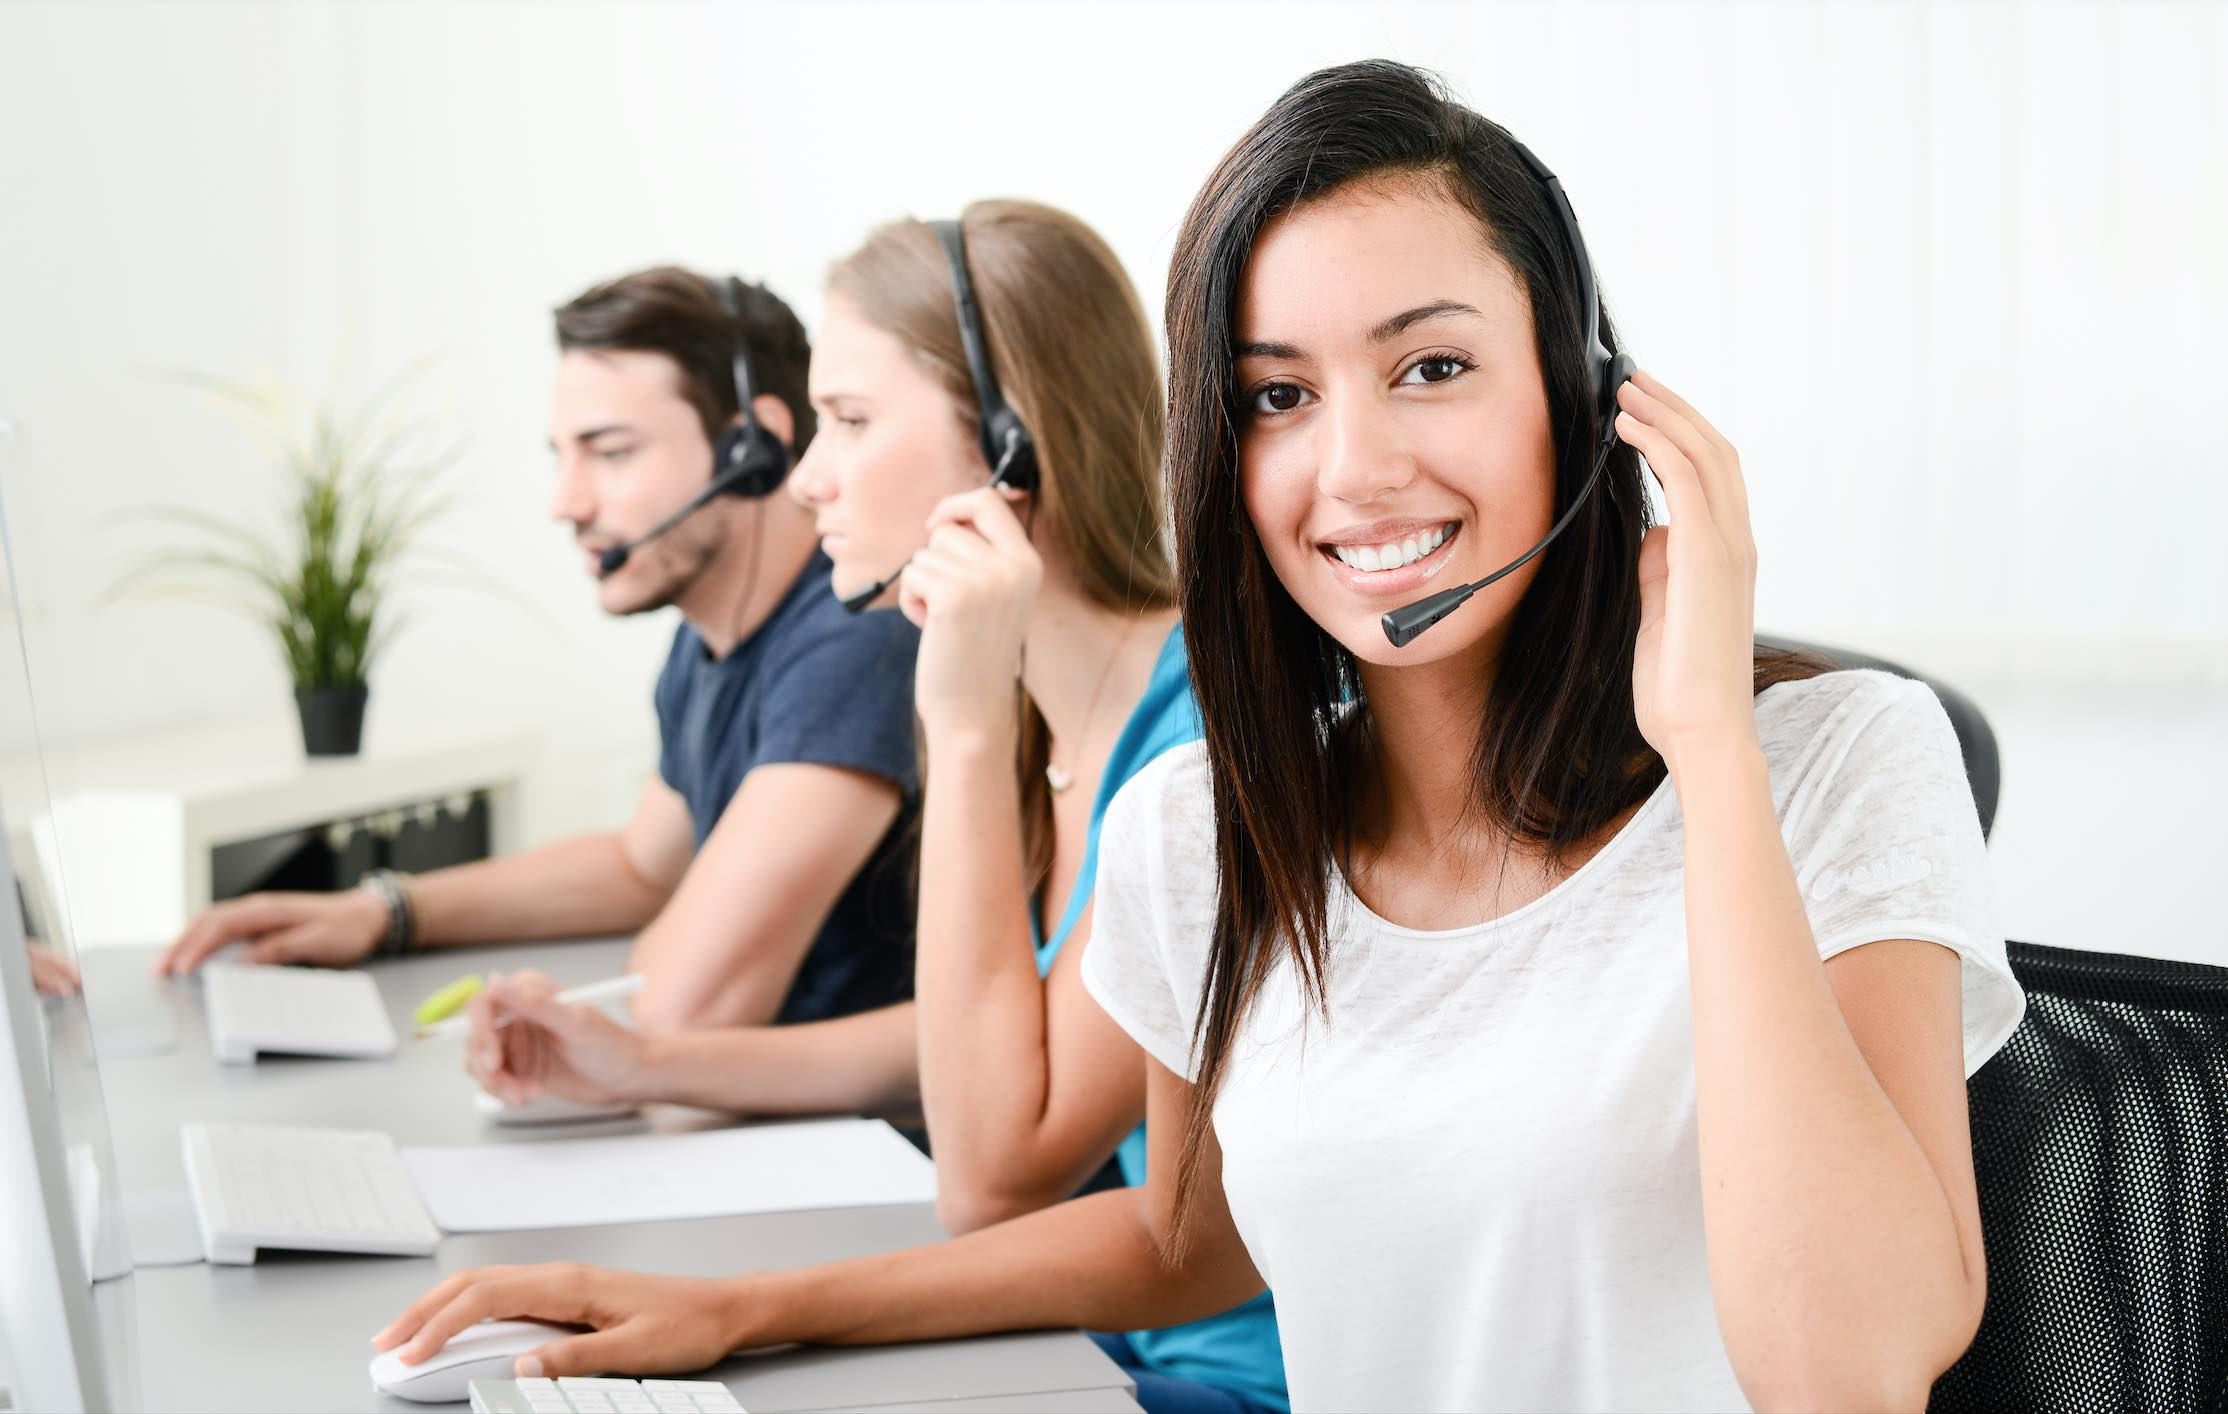 Vegan Helpline Staff